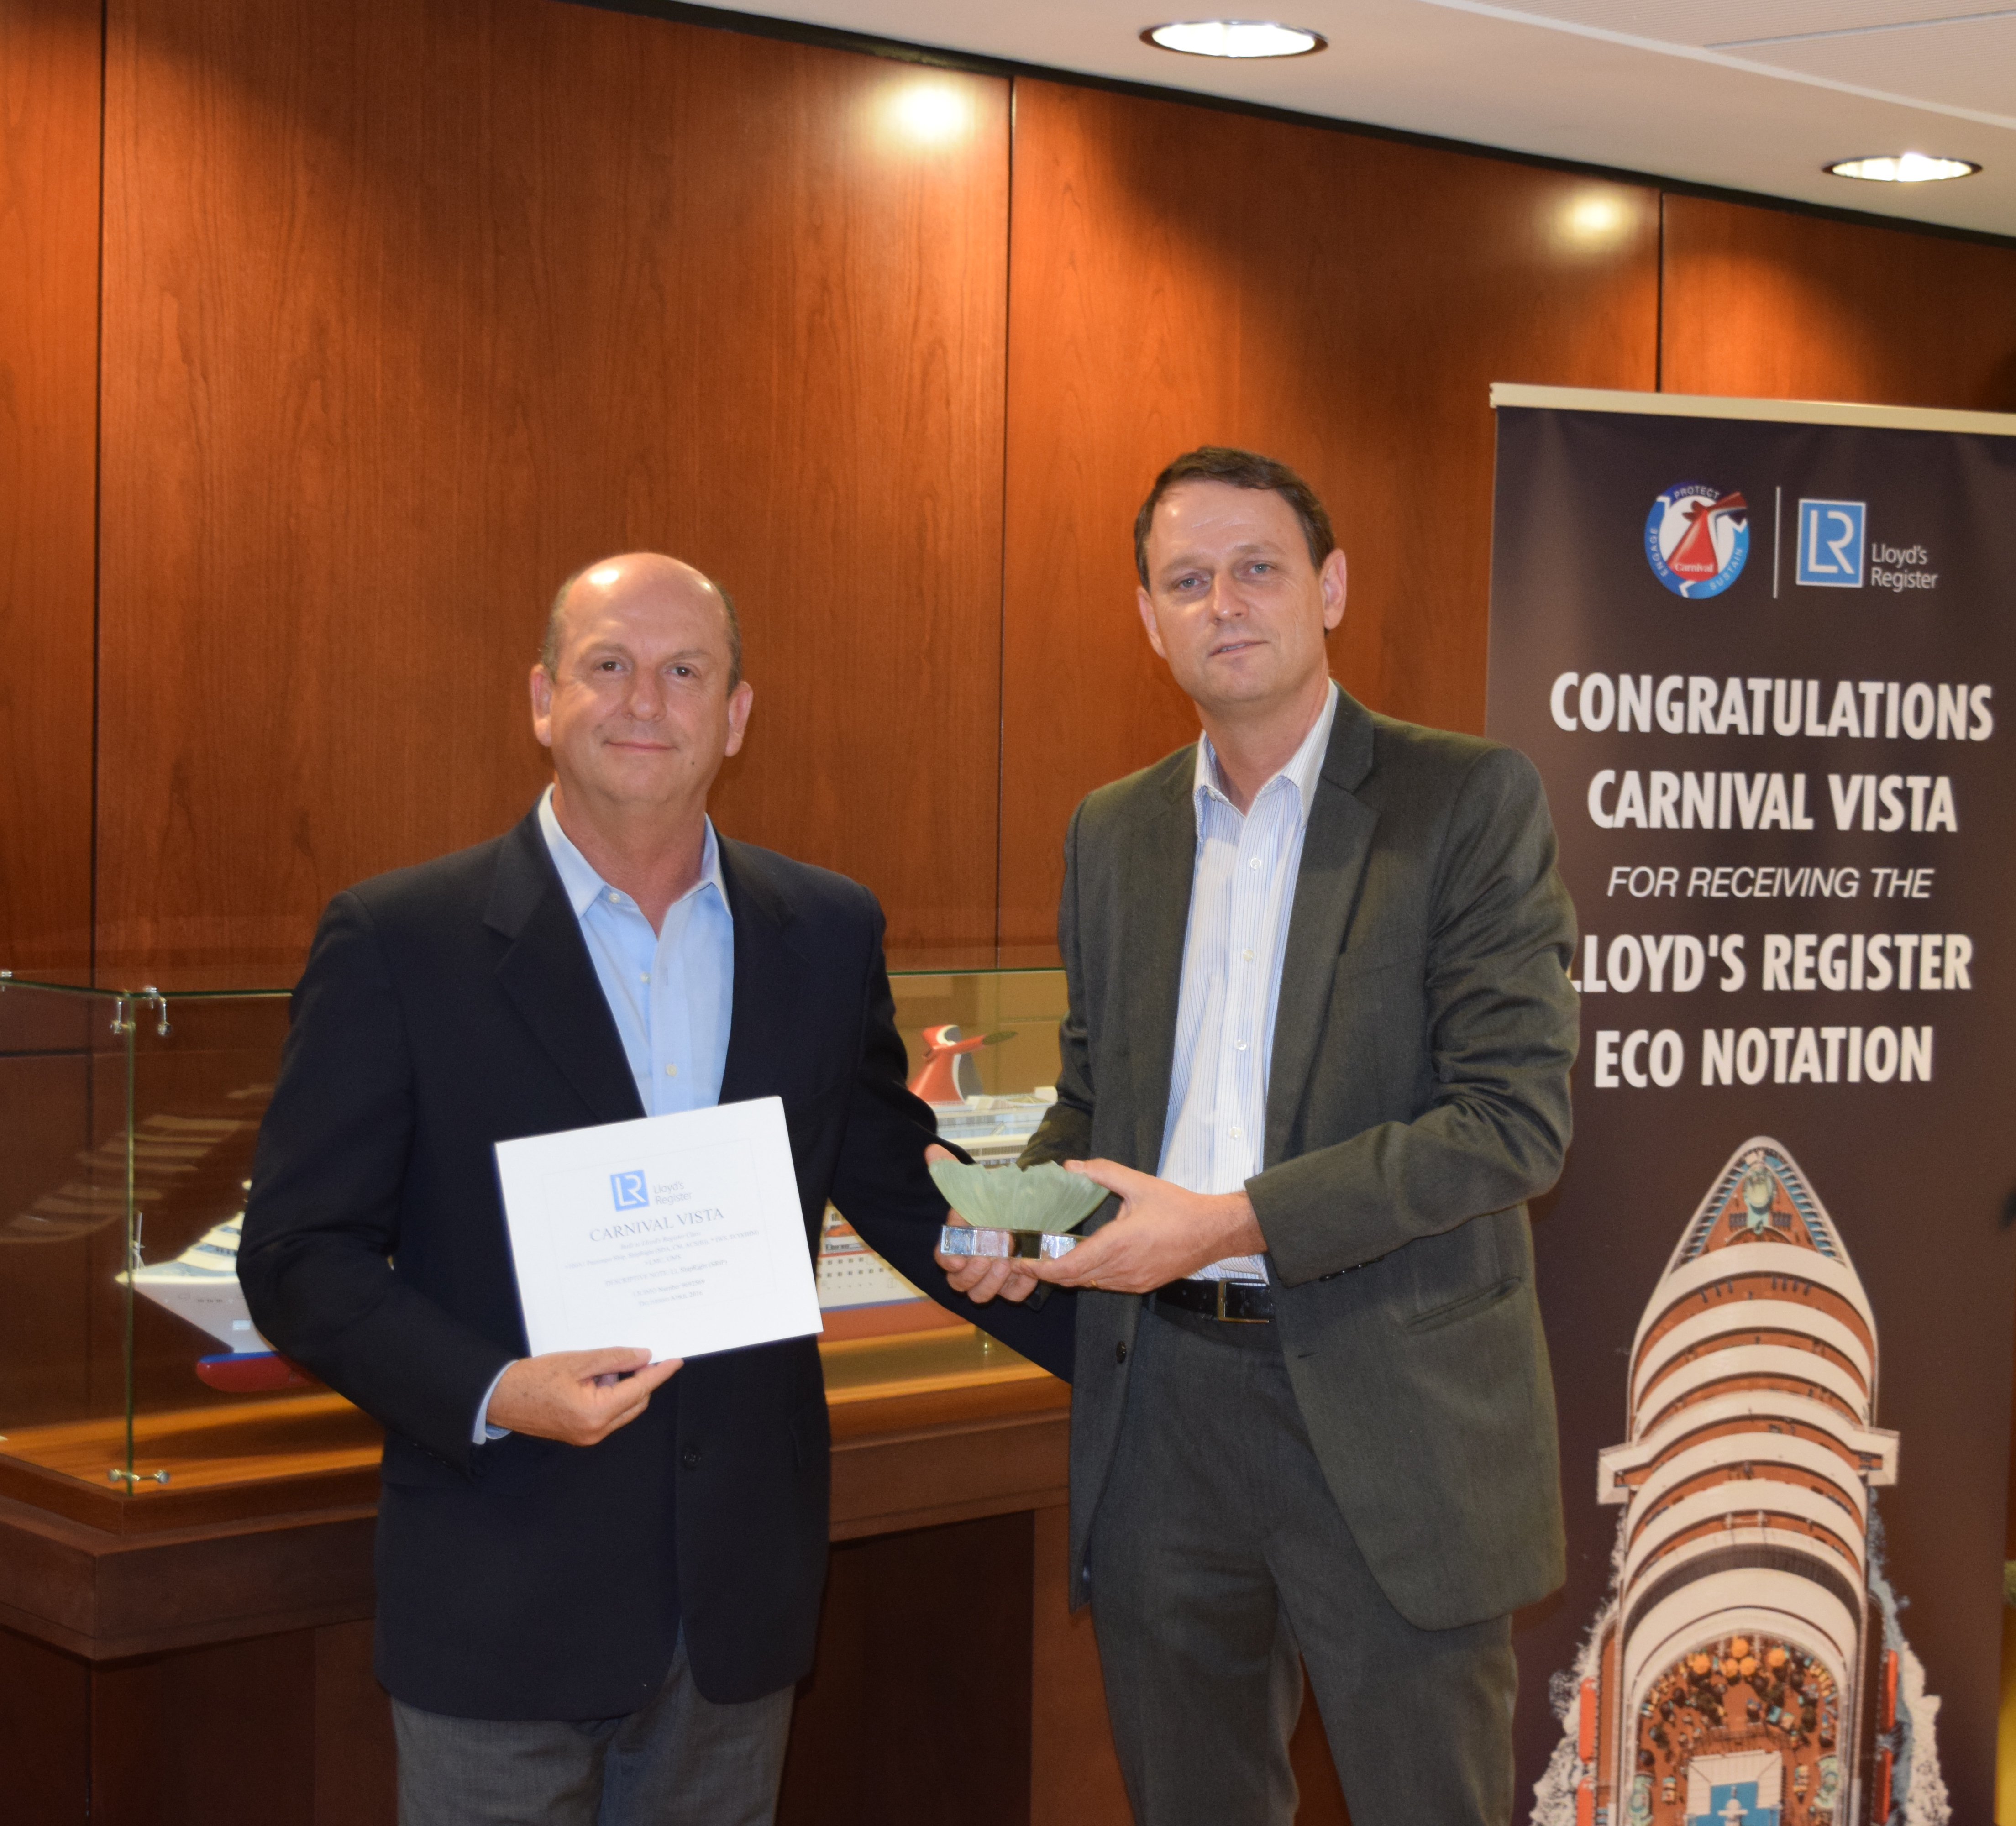 Carnival Cruise Line's Newest Ship, Carnival Vista, Recognized by Lloyd's Register for 'Green' Ship Environmental Design, Construction and Operation